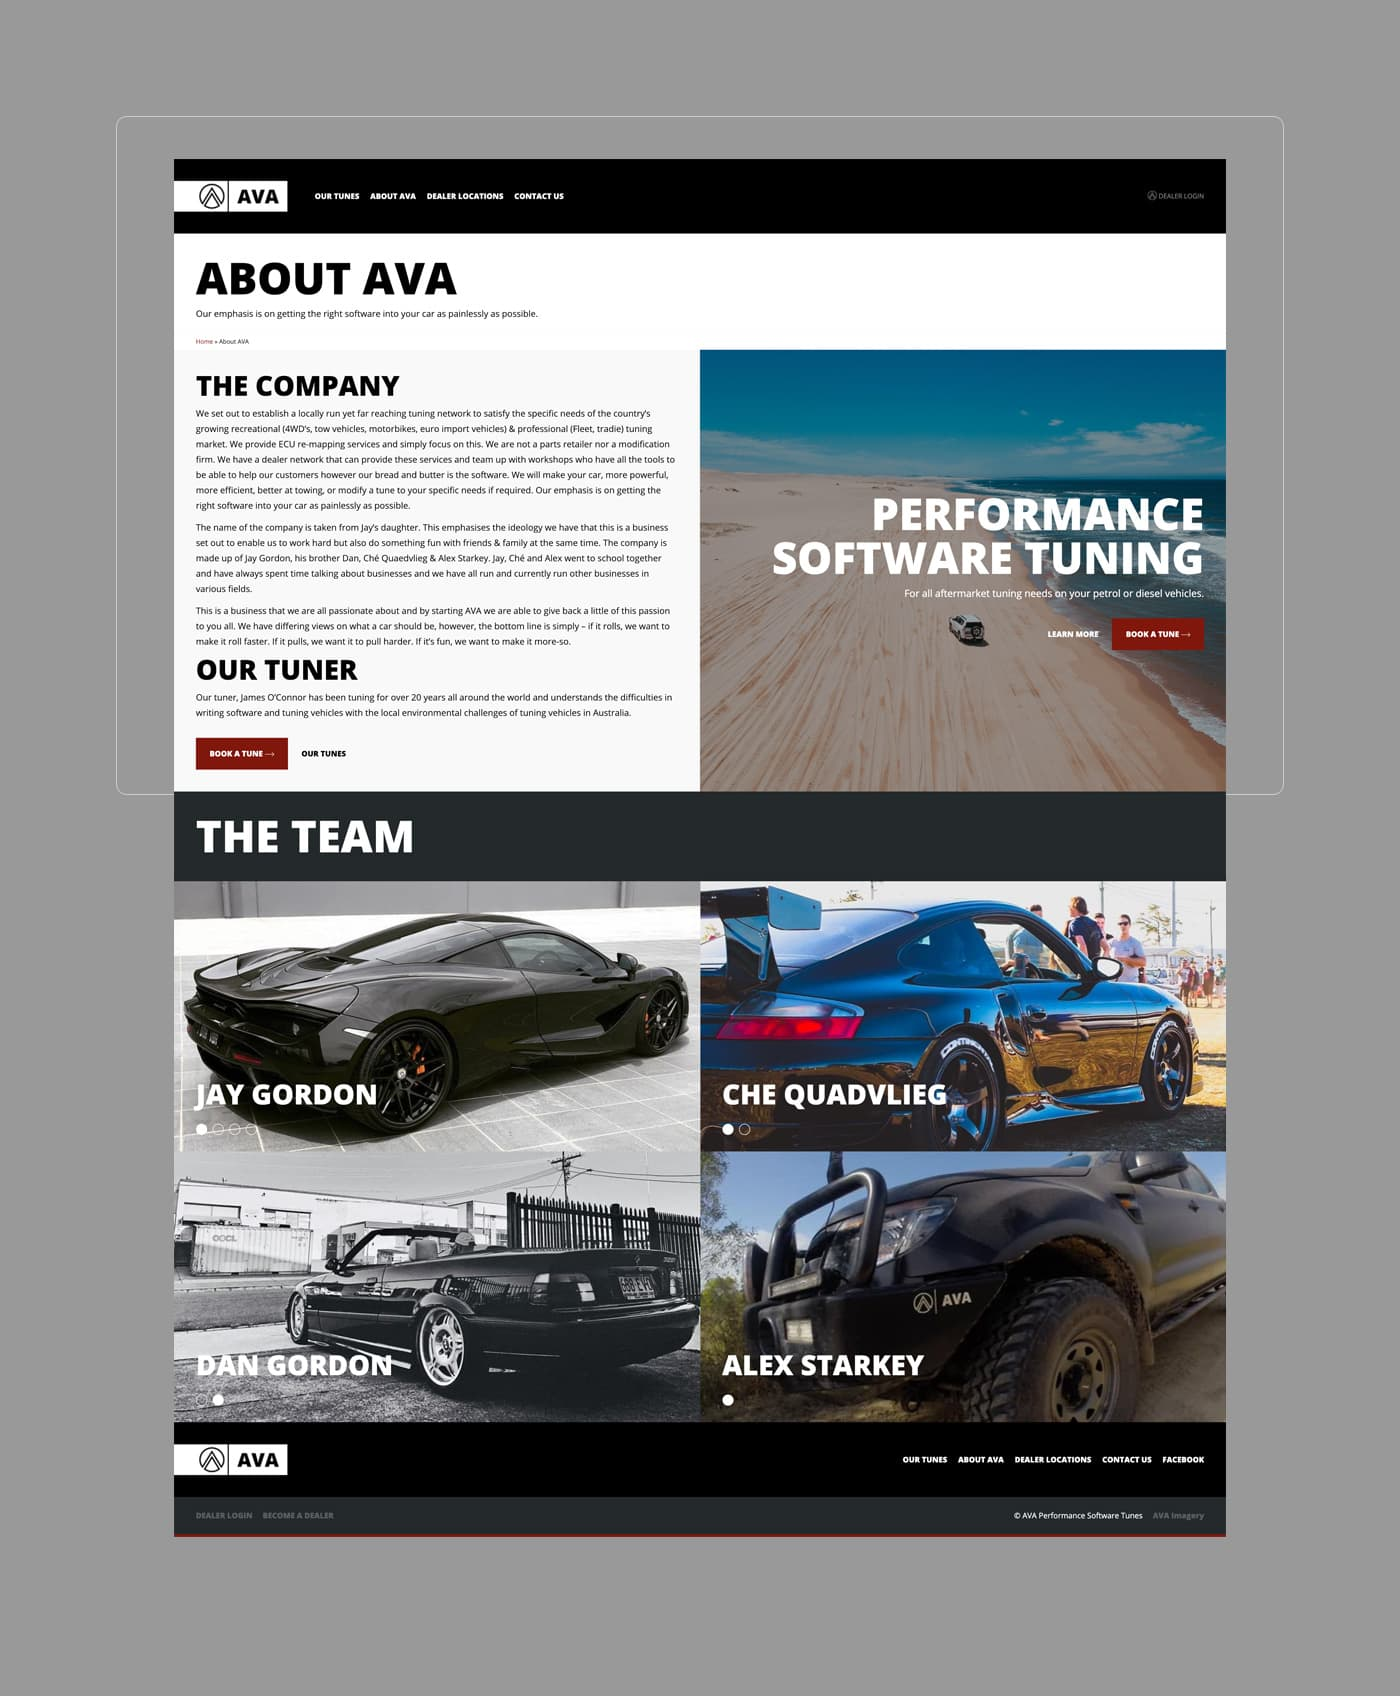 AVA Performance Software Tuning - About AVA